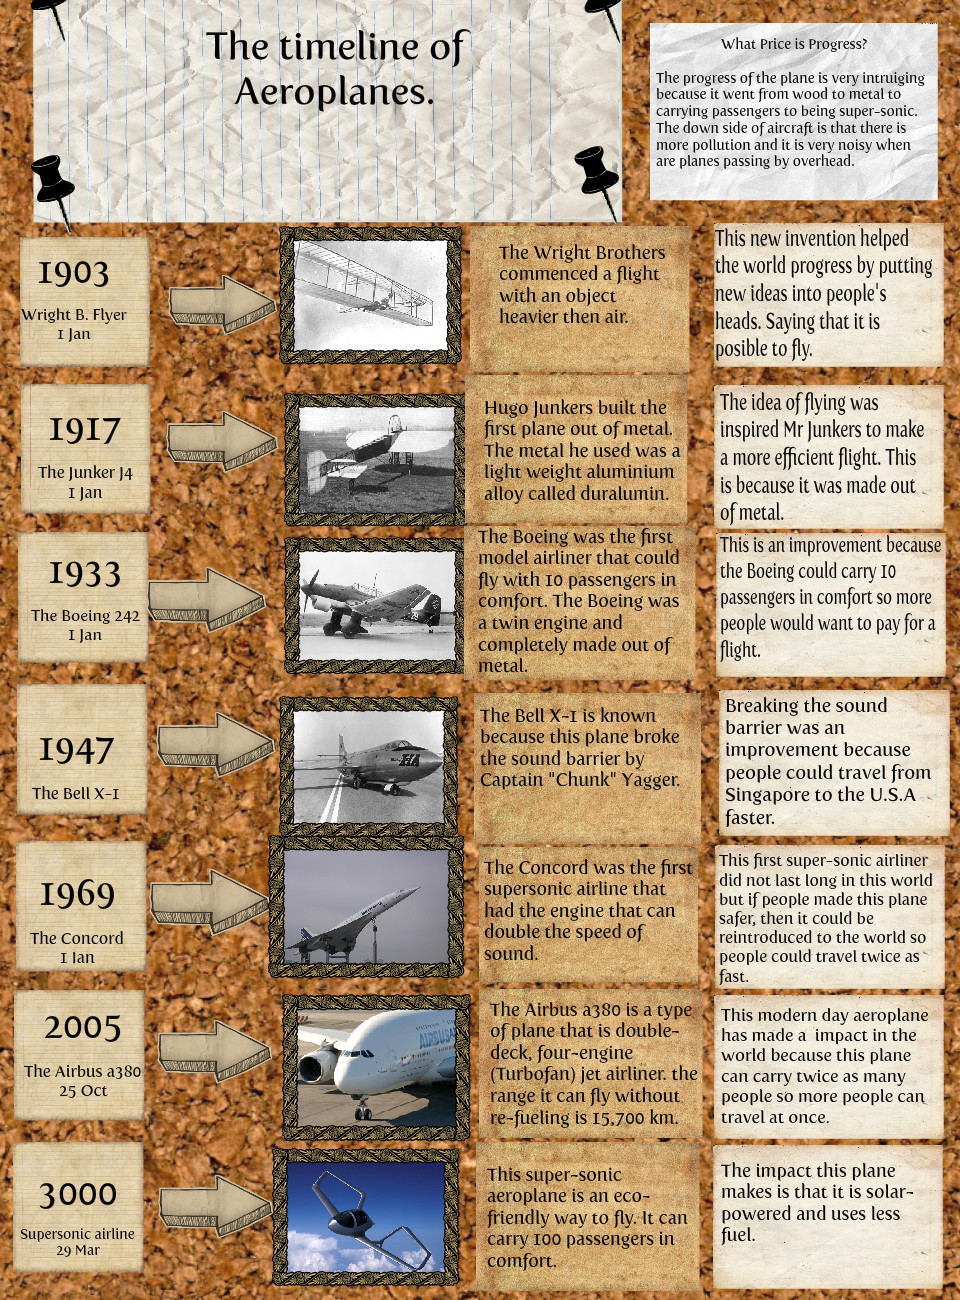 The timeline of Aeroplanes